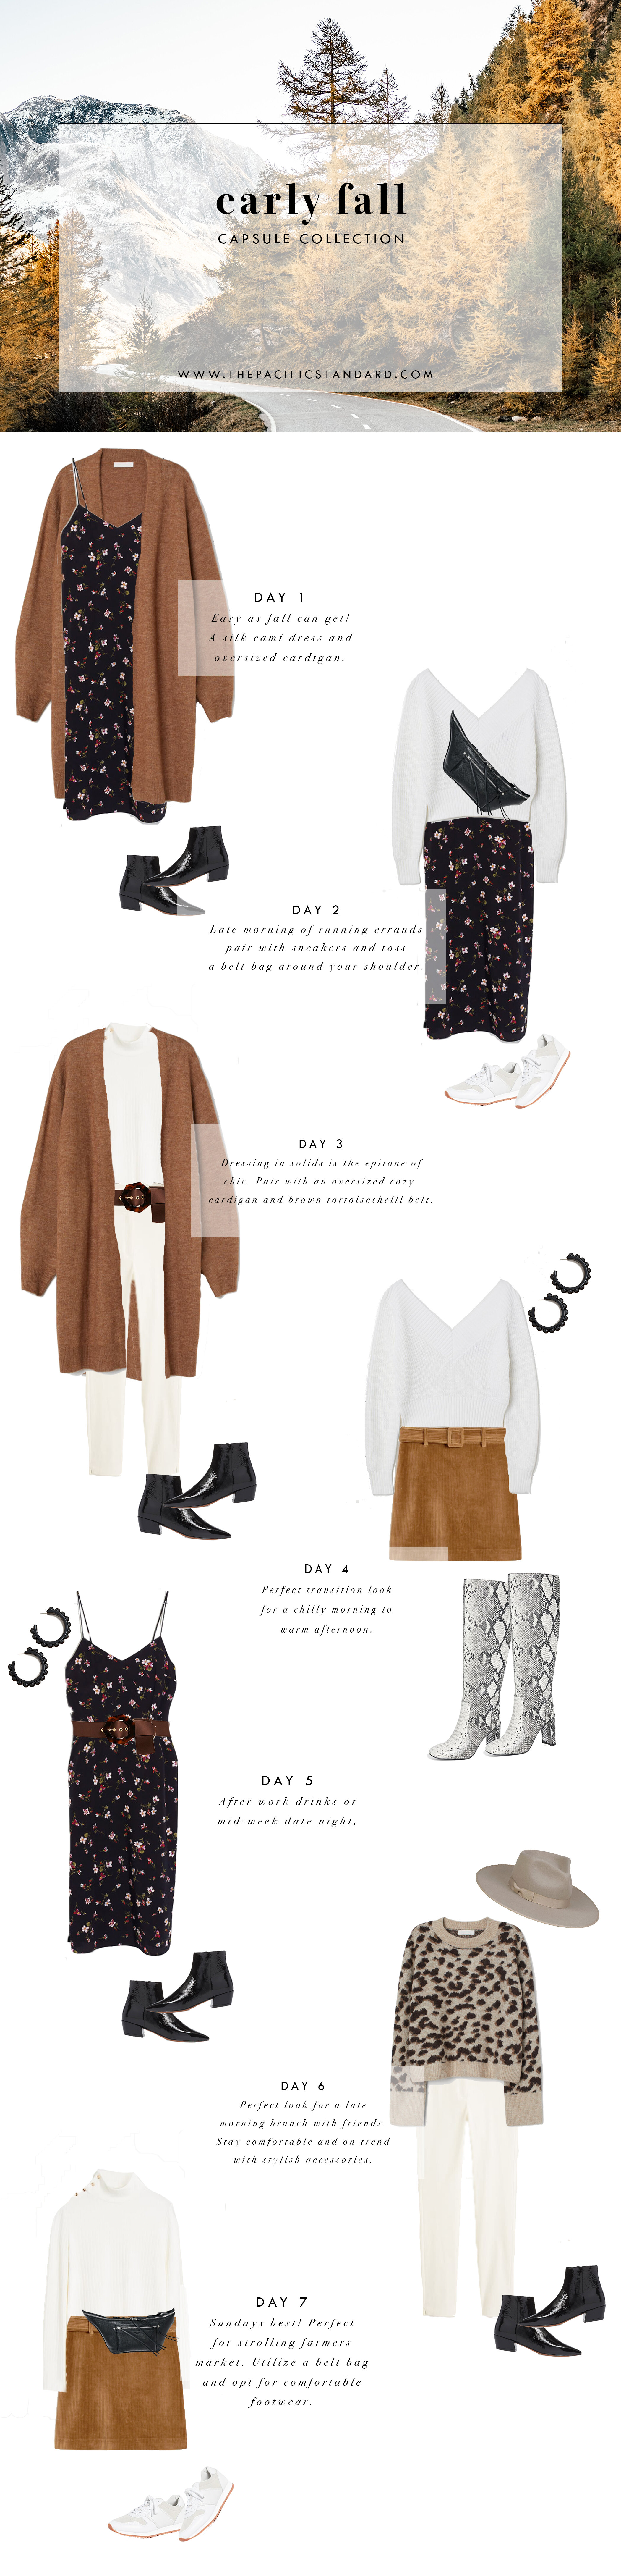 Fall fashion outfit ideas via. The Pacific Standard | www.thepacificstandard.com